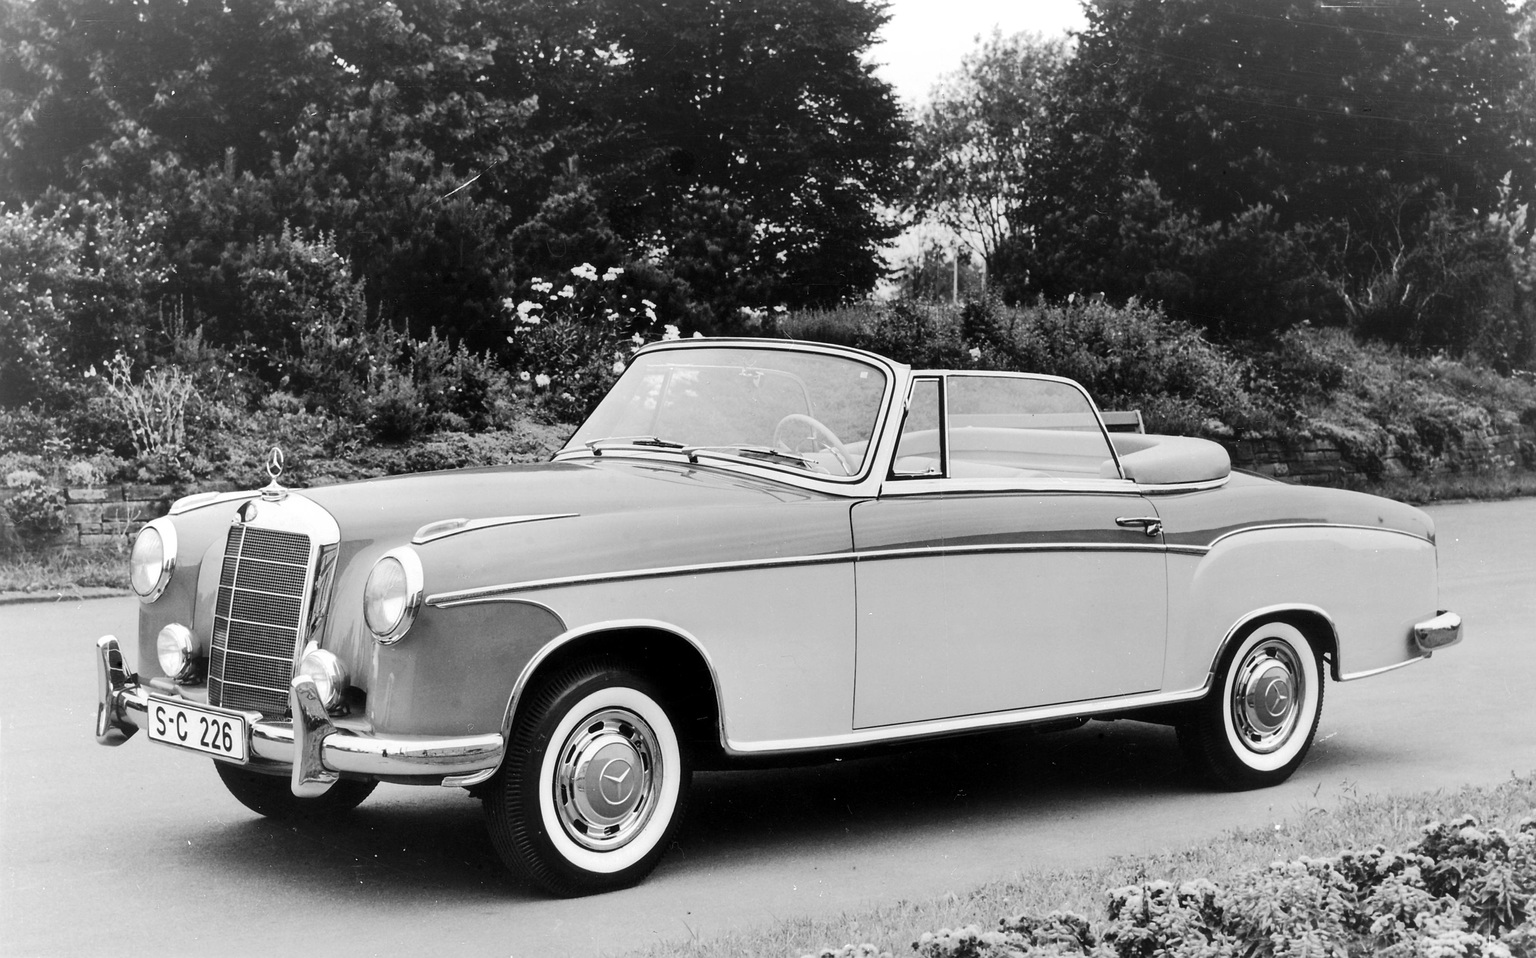 1956 1959 mercedes benz 220 s cabriolet for 1959 mercedes benz 220s